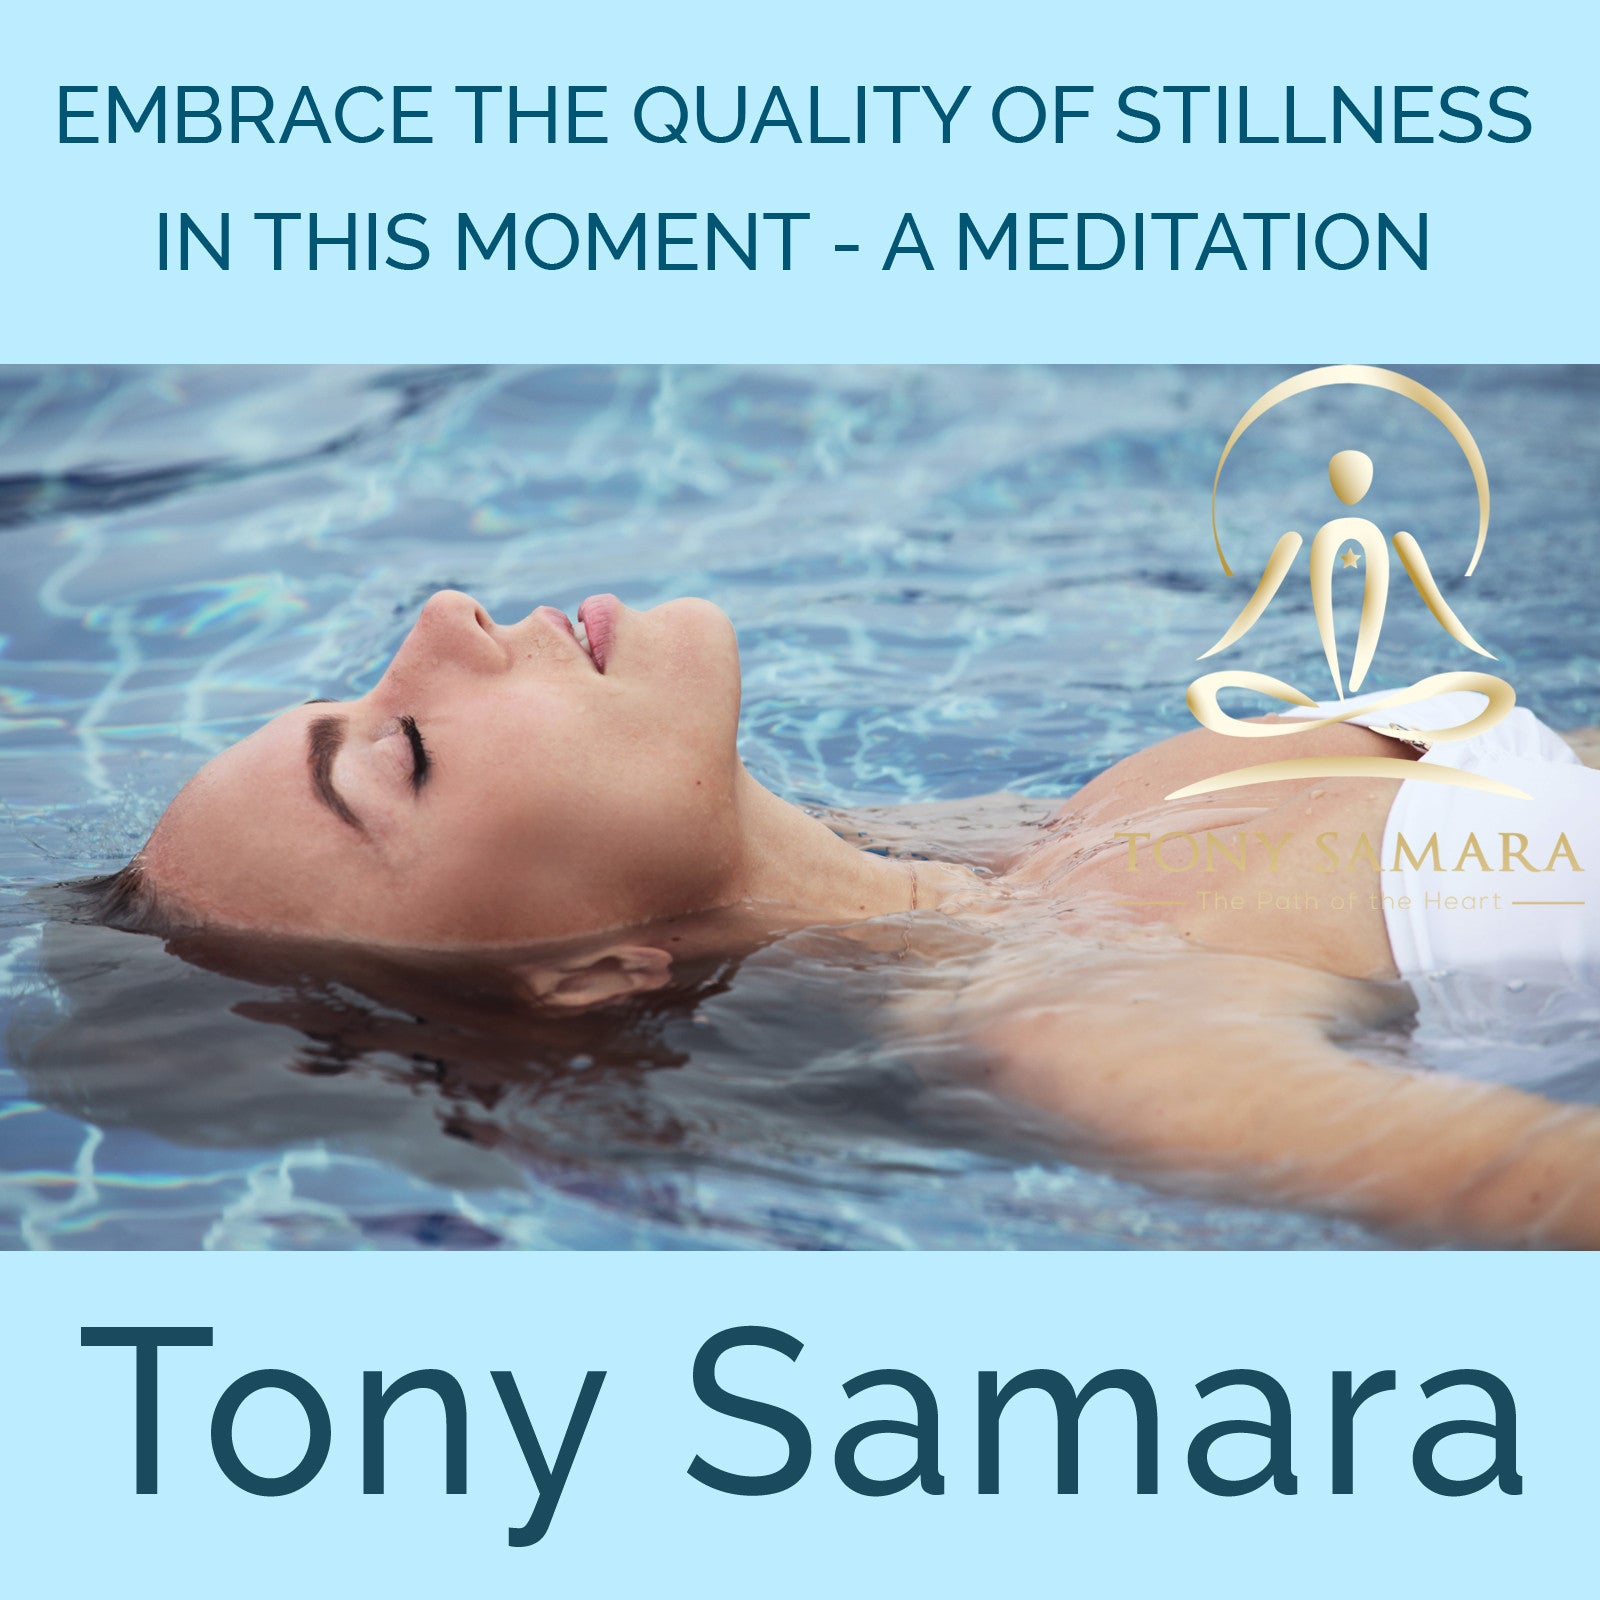 Embrace the Quality of Stillness Meditation (MP3 Audio Download) - Tony Samara Meditation